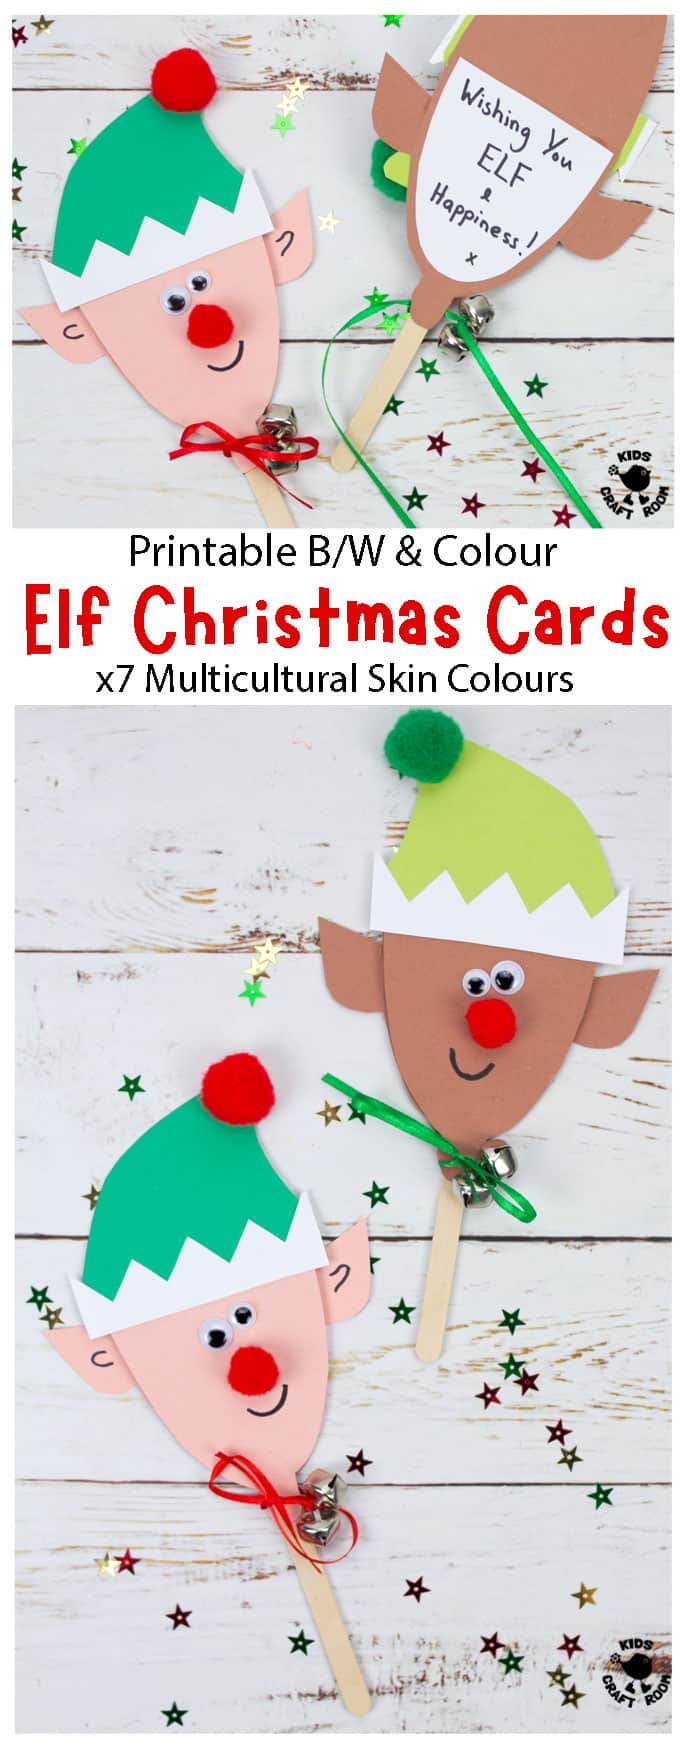 Puppet Elf Christmas Cards pin image 1